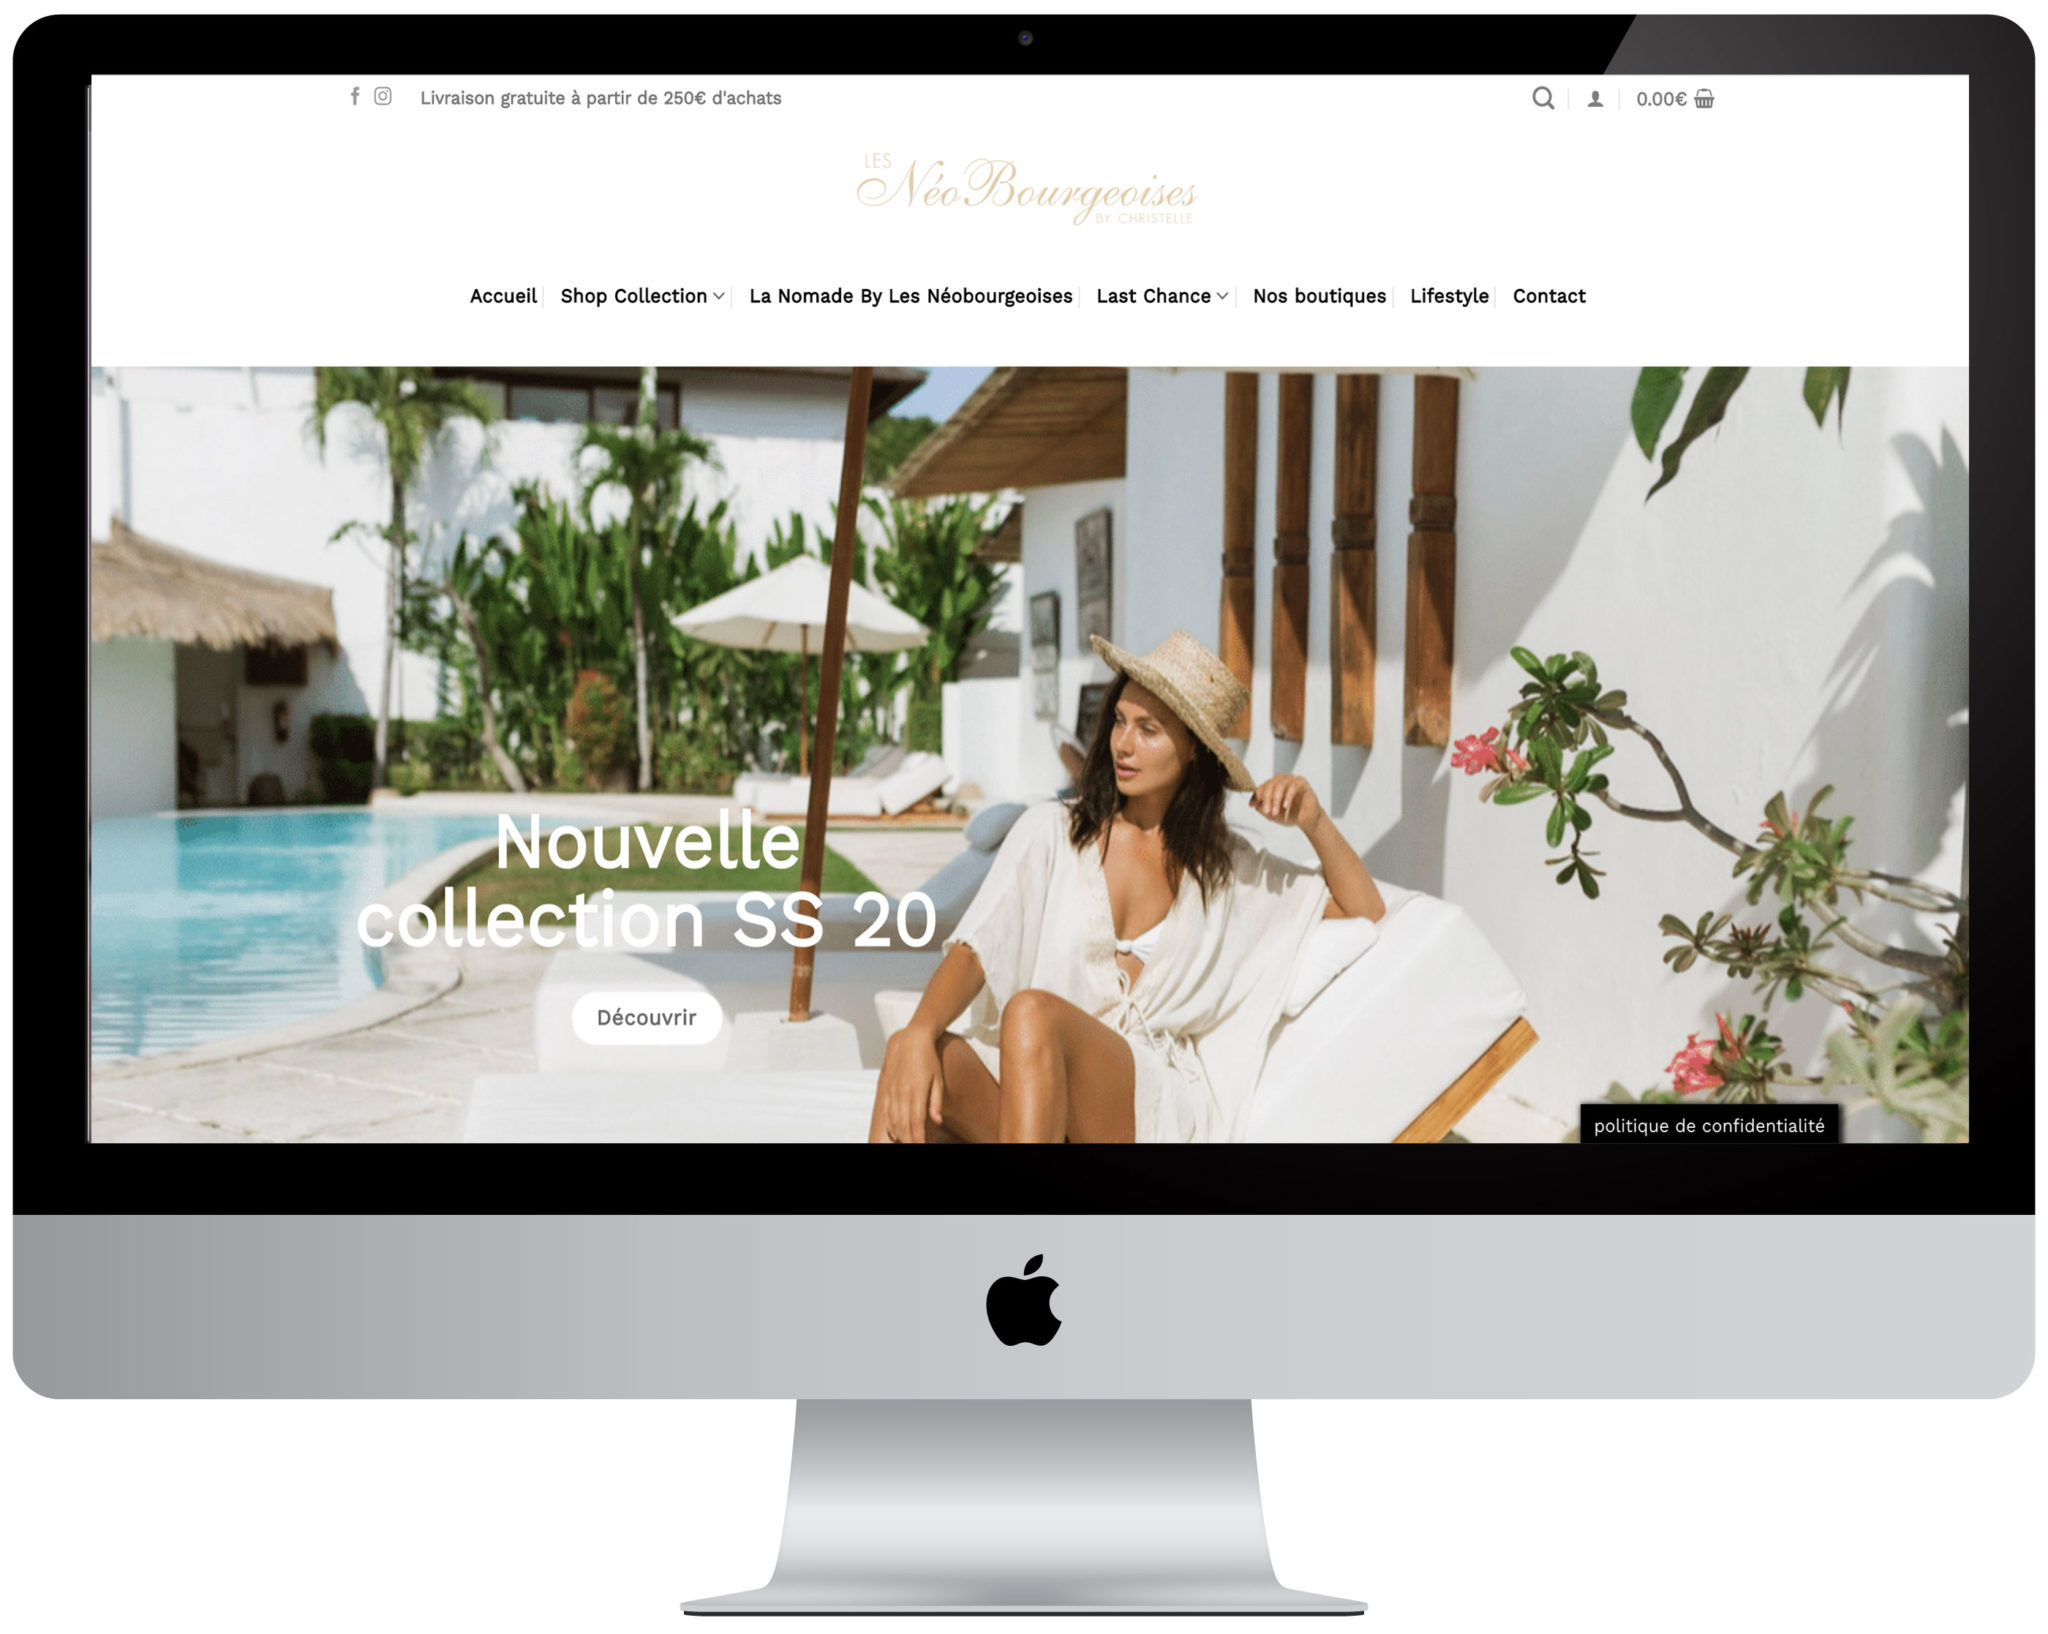 Creation de site web cannes, Creation de site web nice, Creation de site web aix en provence, Creation de site web marseille, azur web design